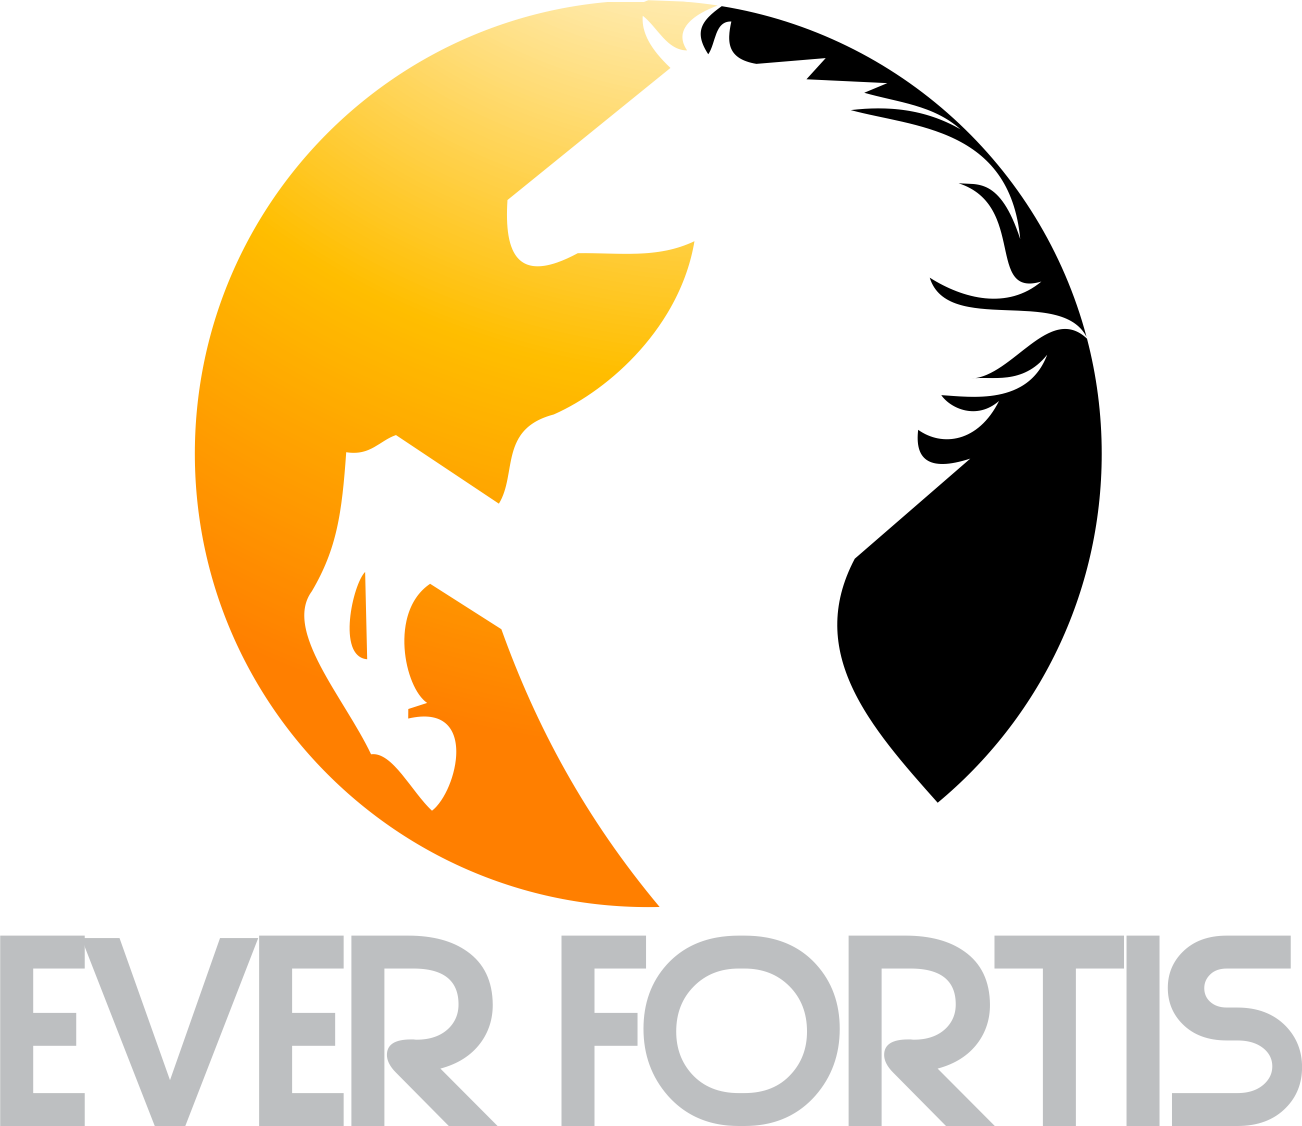 www.everfortis.com